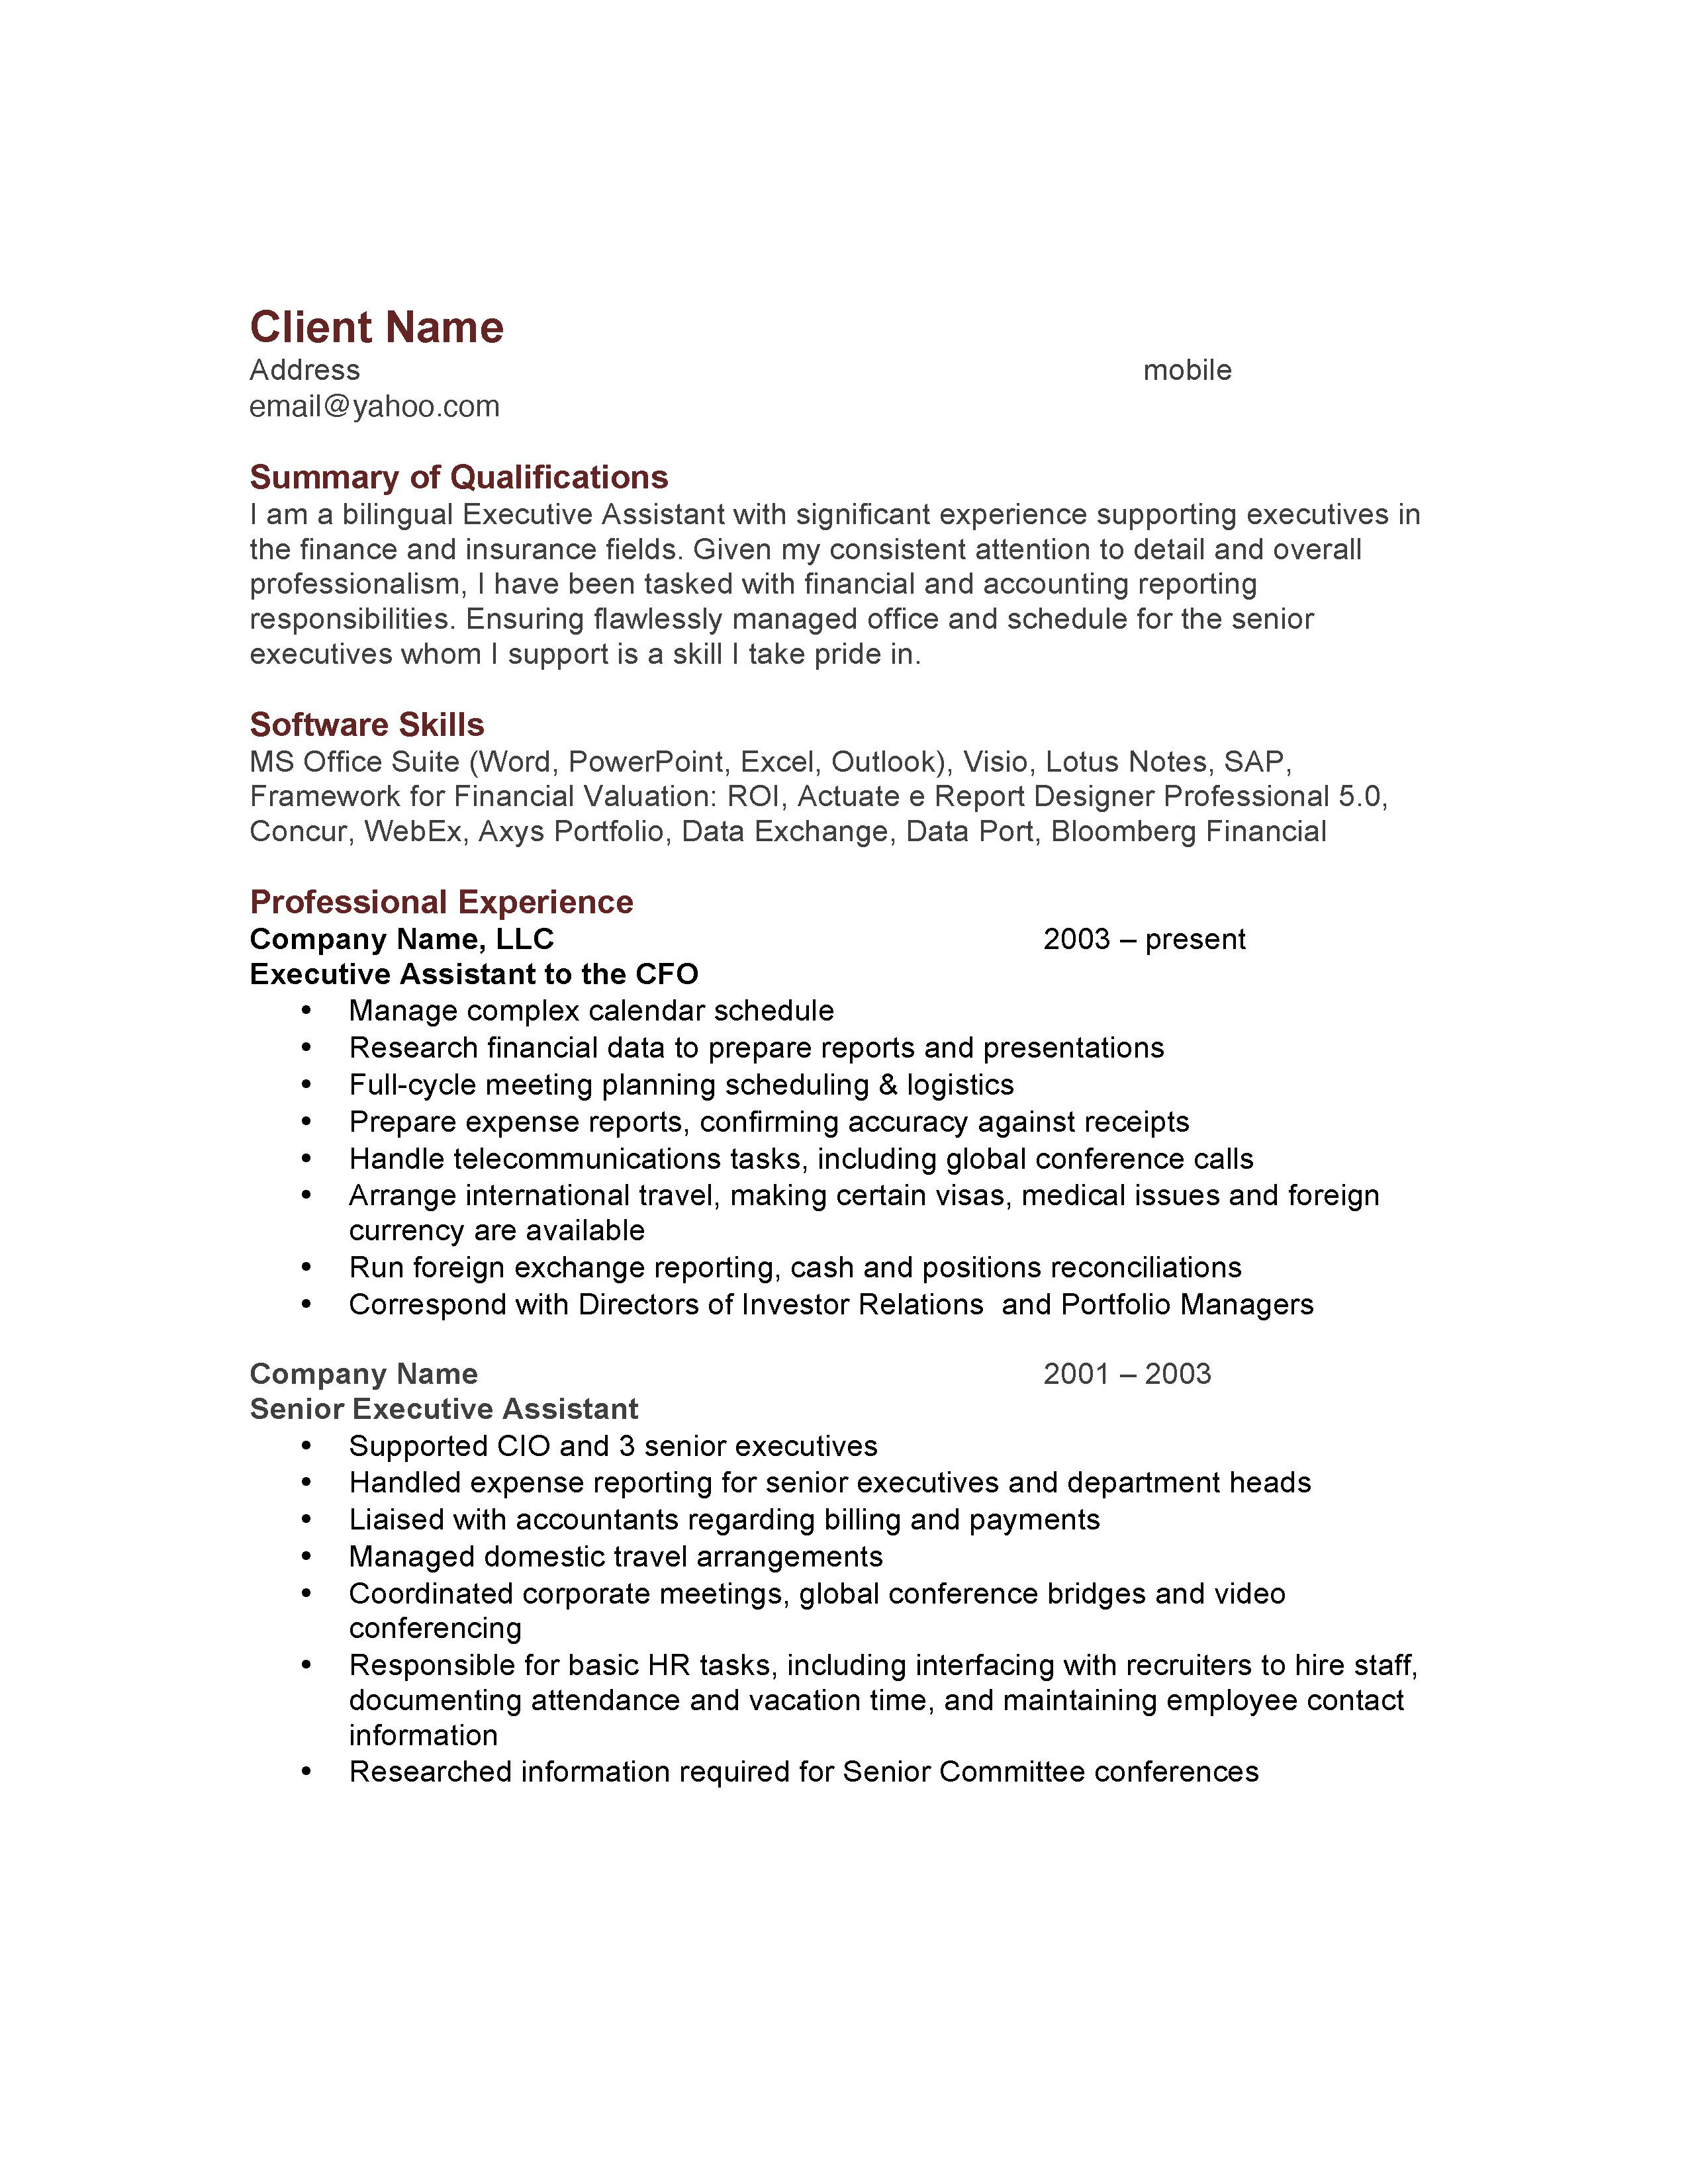 learn useful tips so you can update your resume for your